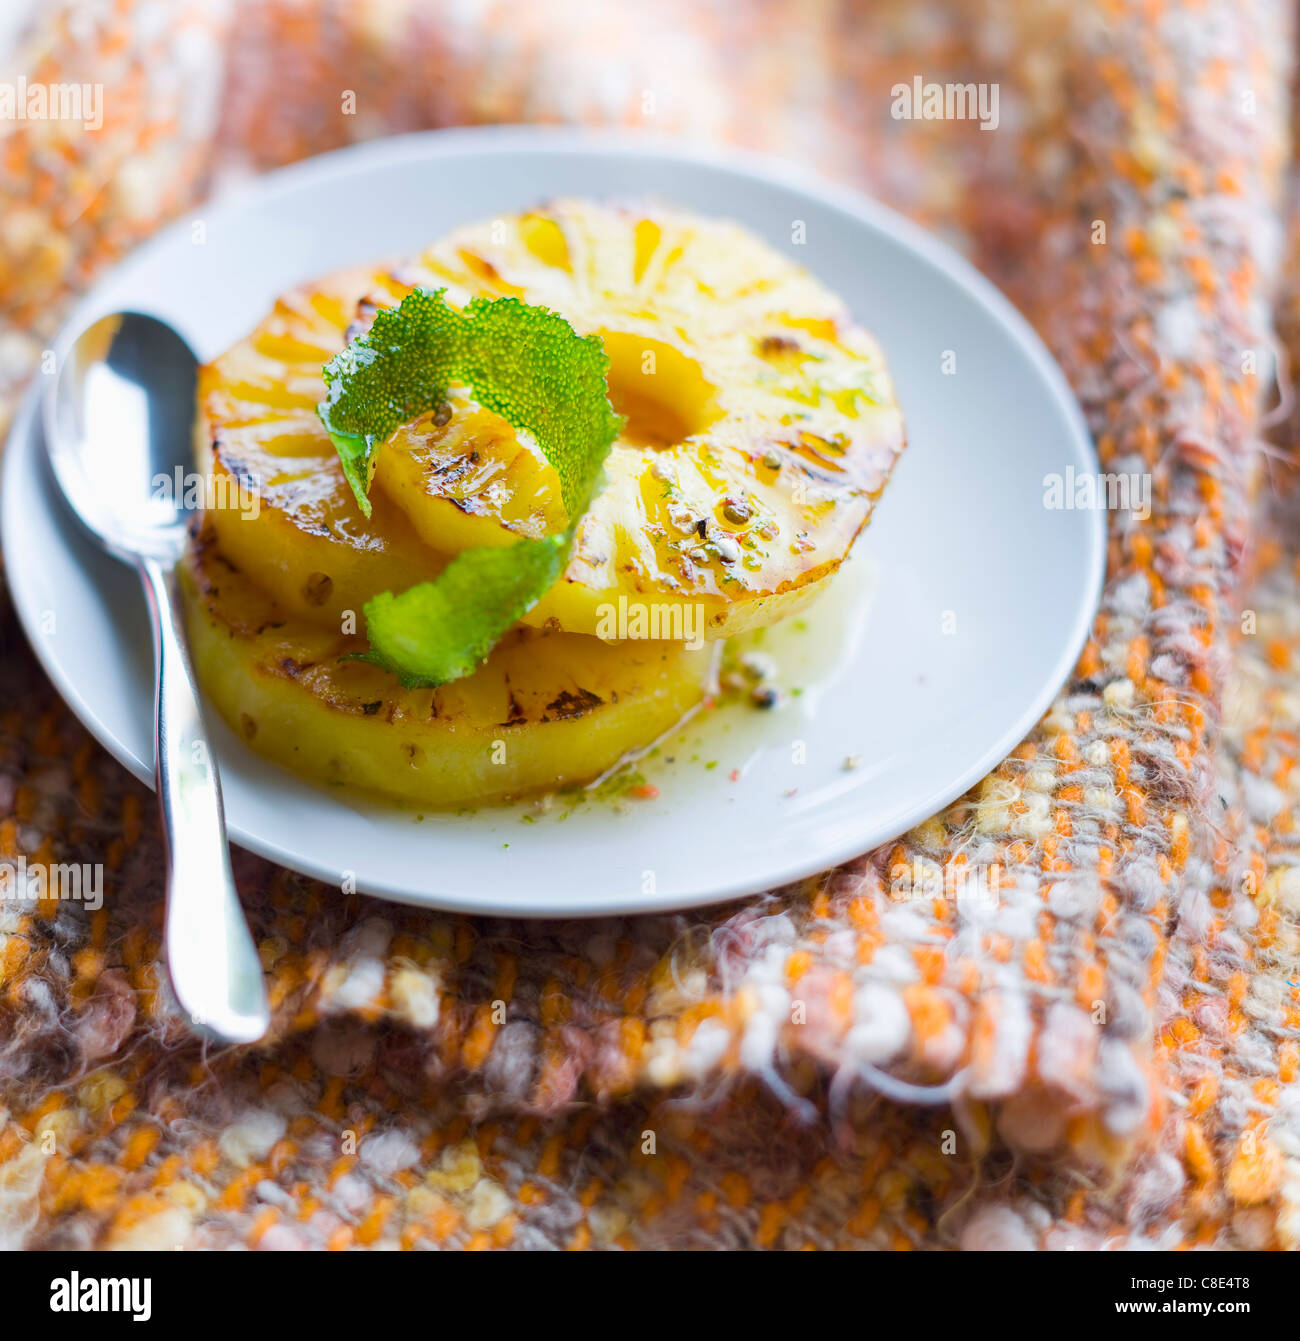 Caramelized pineapple slices with lime - Stock Image